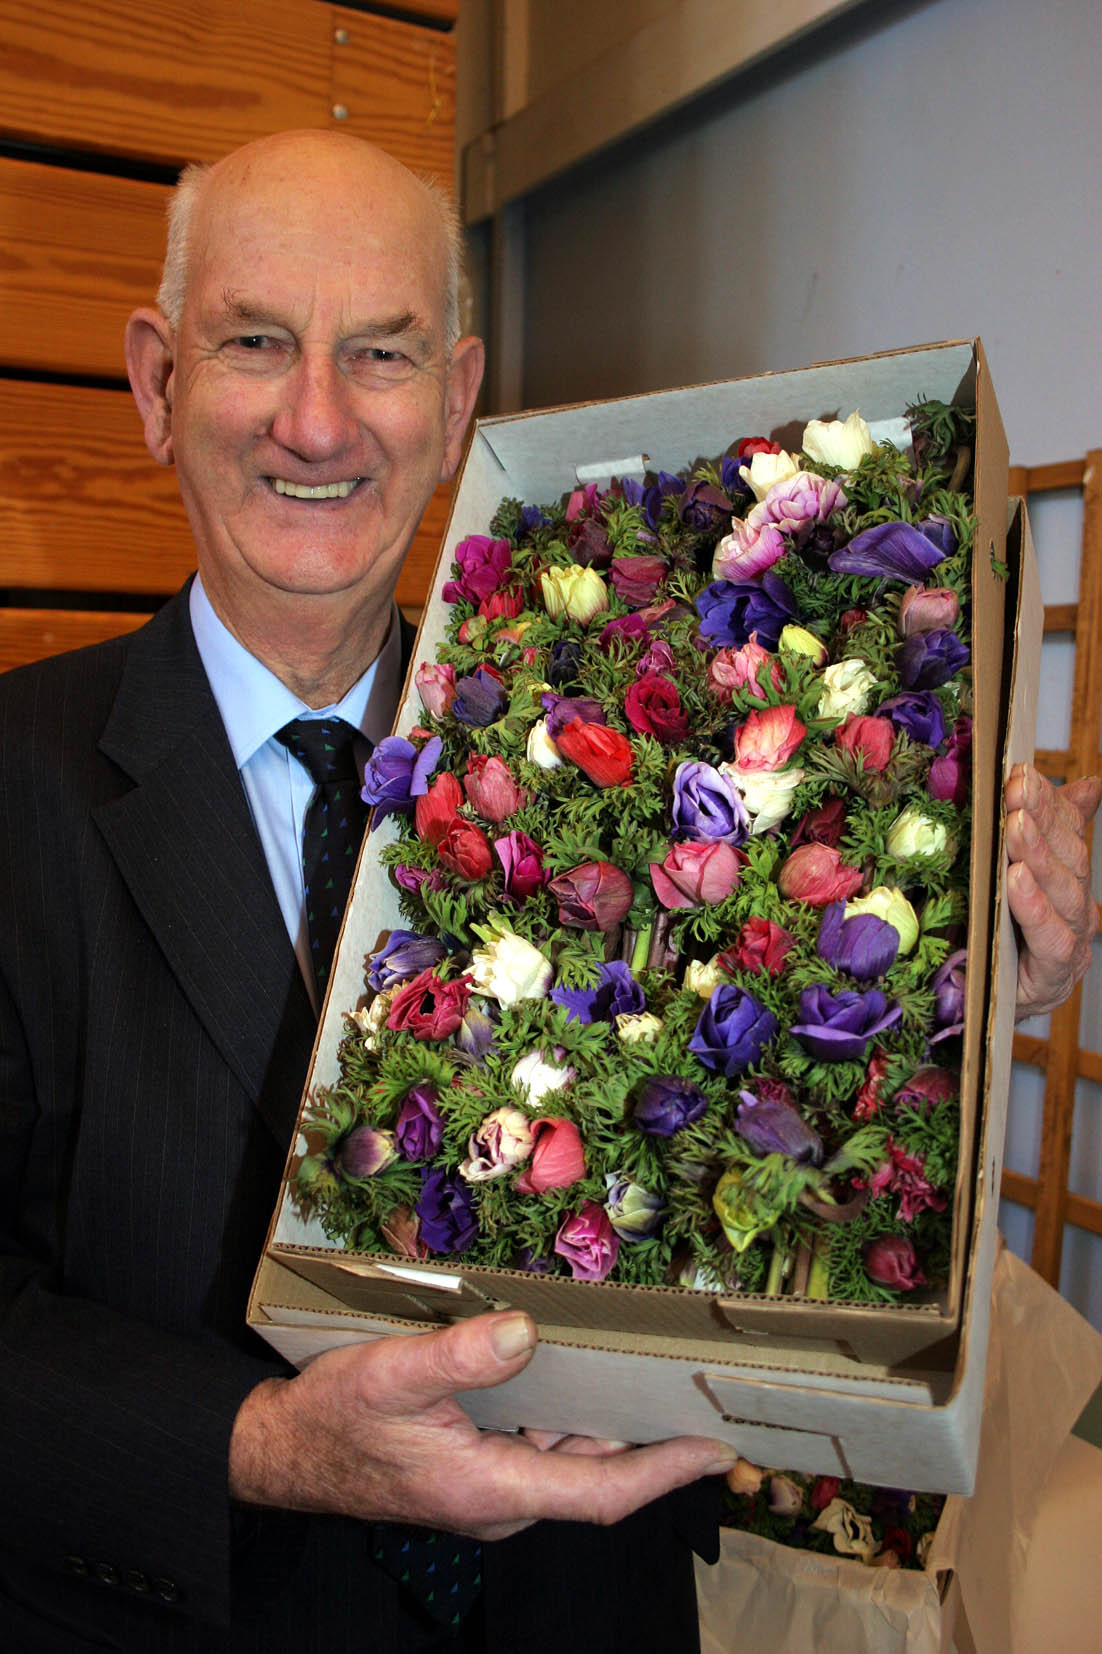 The 82nd West Cornwall Spring Show at St JohnÕs Hall Penzance. The showÕs president elect  Lloyd Reynolds with his 1st prize winning box of Anemone. Pic by CIOSP For Fletch